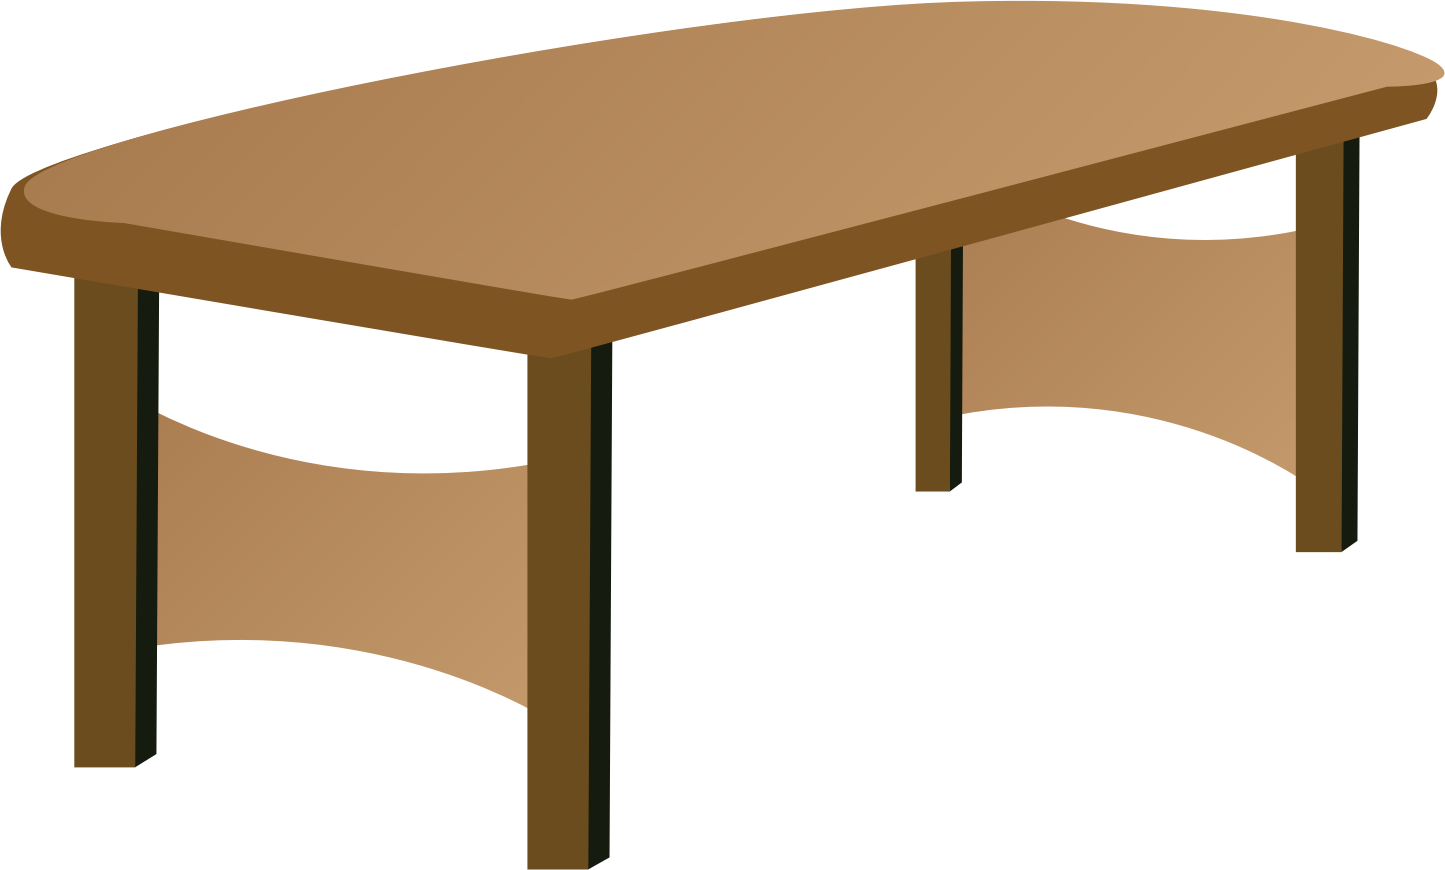 Desk clipart transparent background. Table nightstand free content